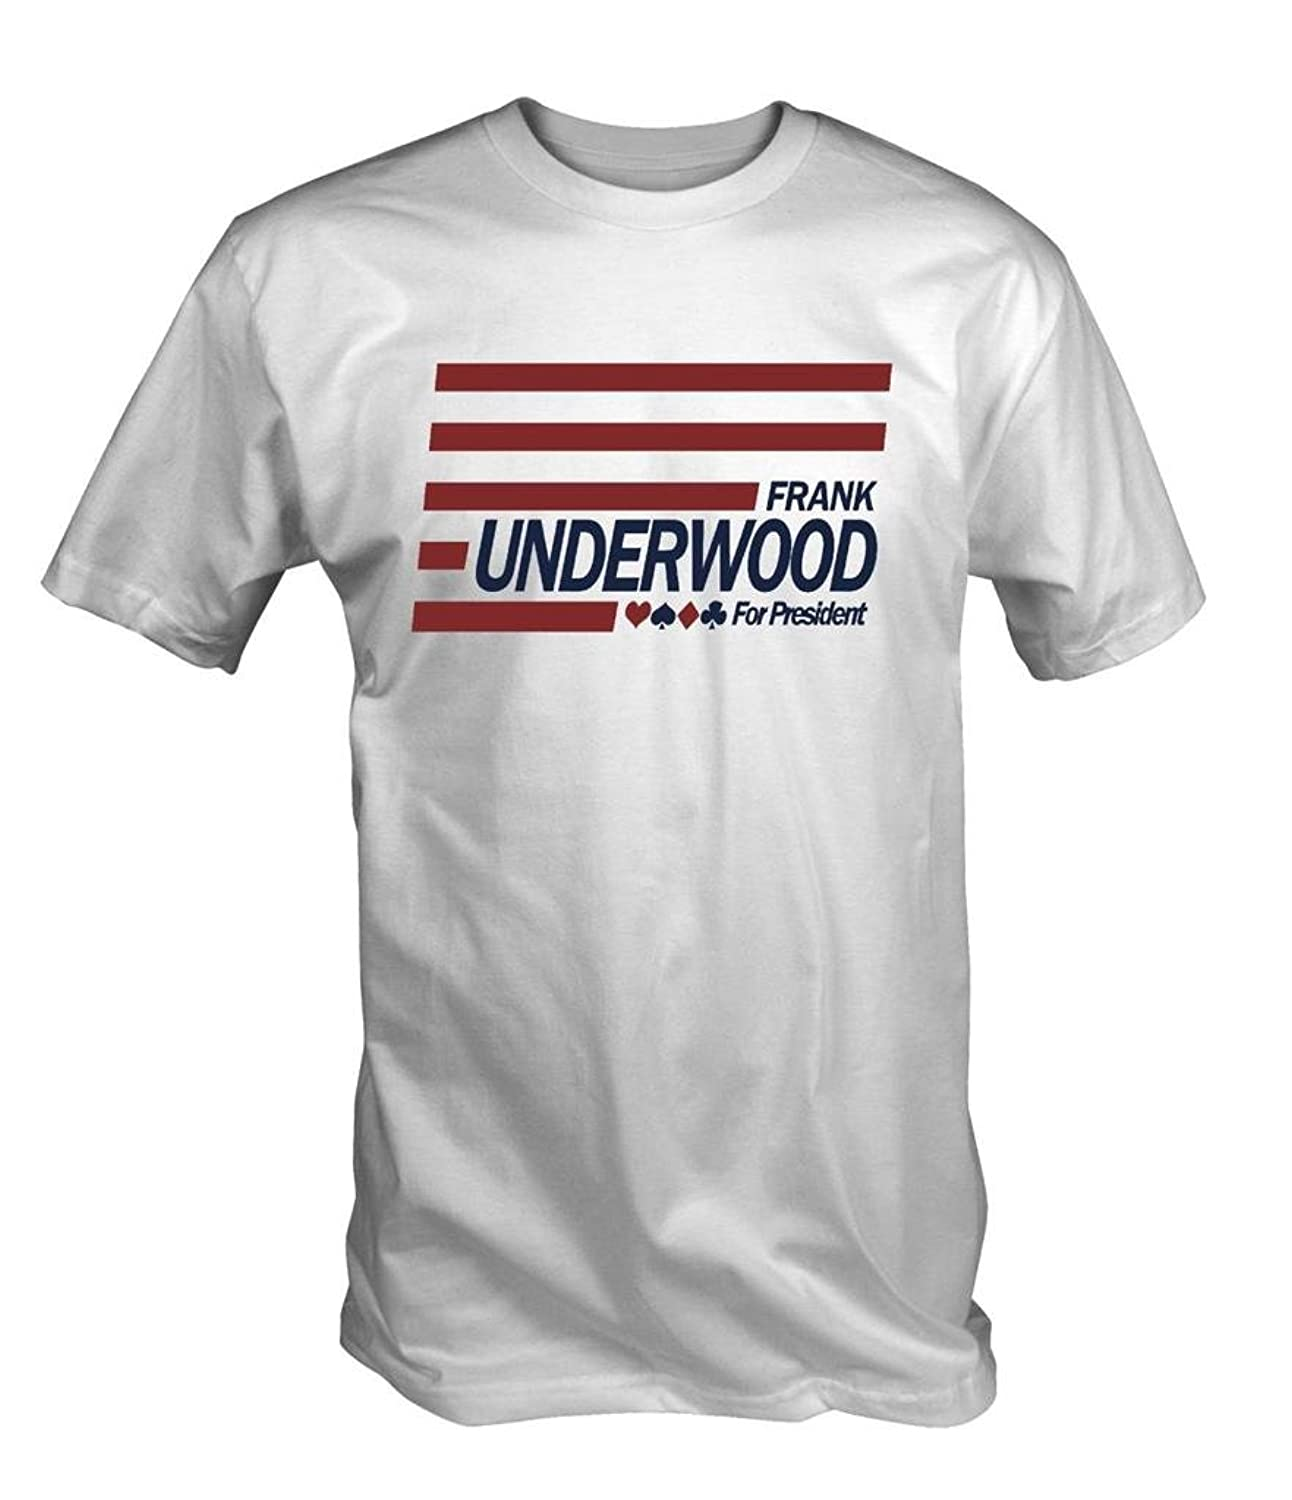 Frank Underwood Frank Underwood For President